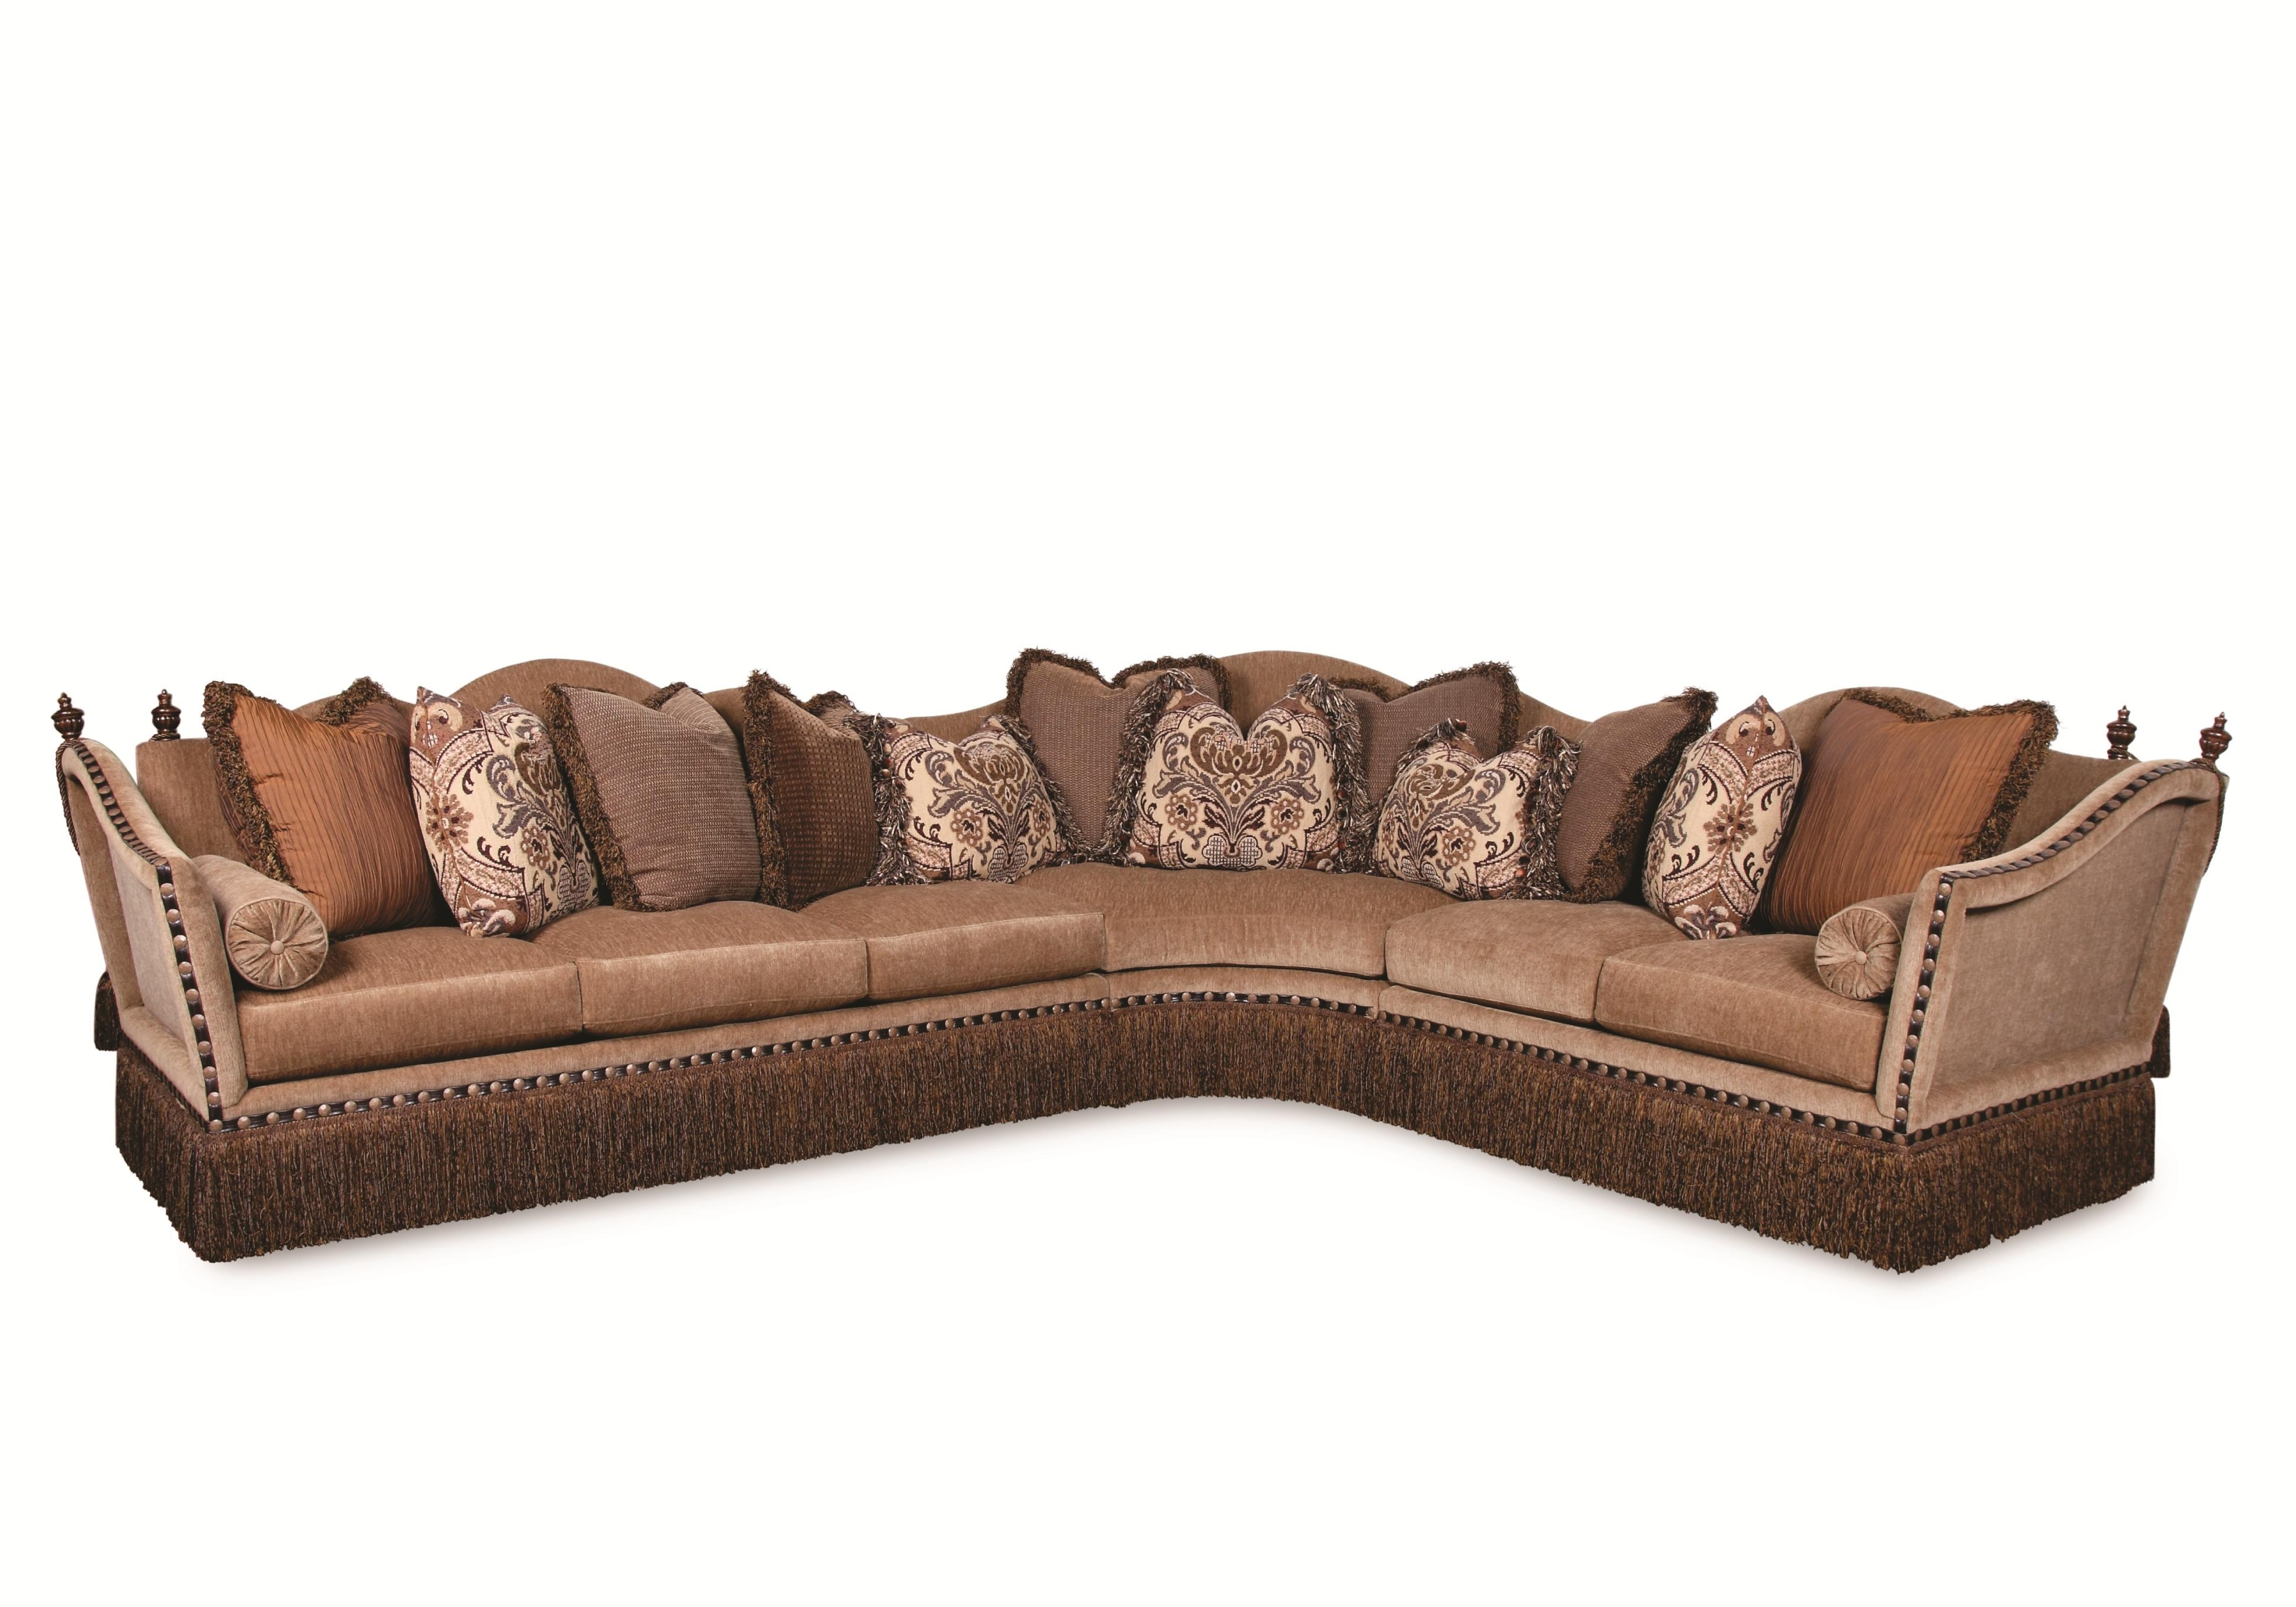 Fashionable Sectional Sofas In Savannah Ga For Lorraine Fringed Sectional Sofarachlin Classics (View 6 of 20)